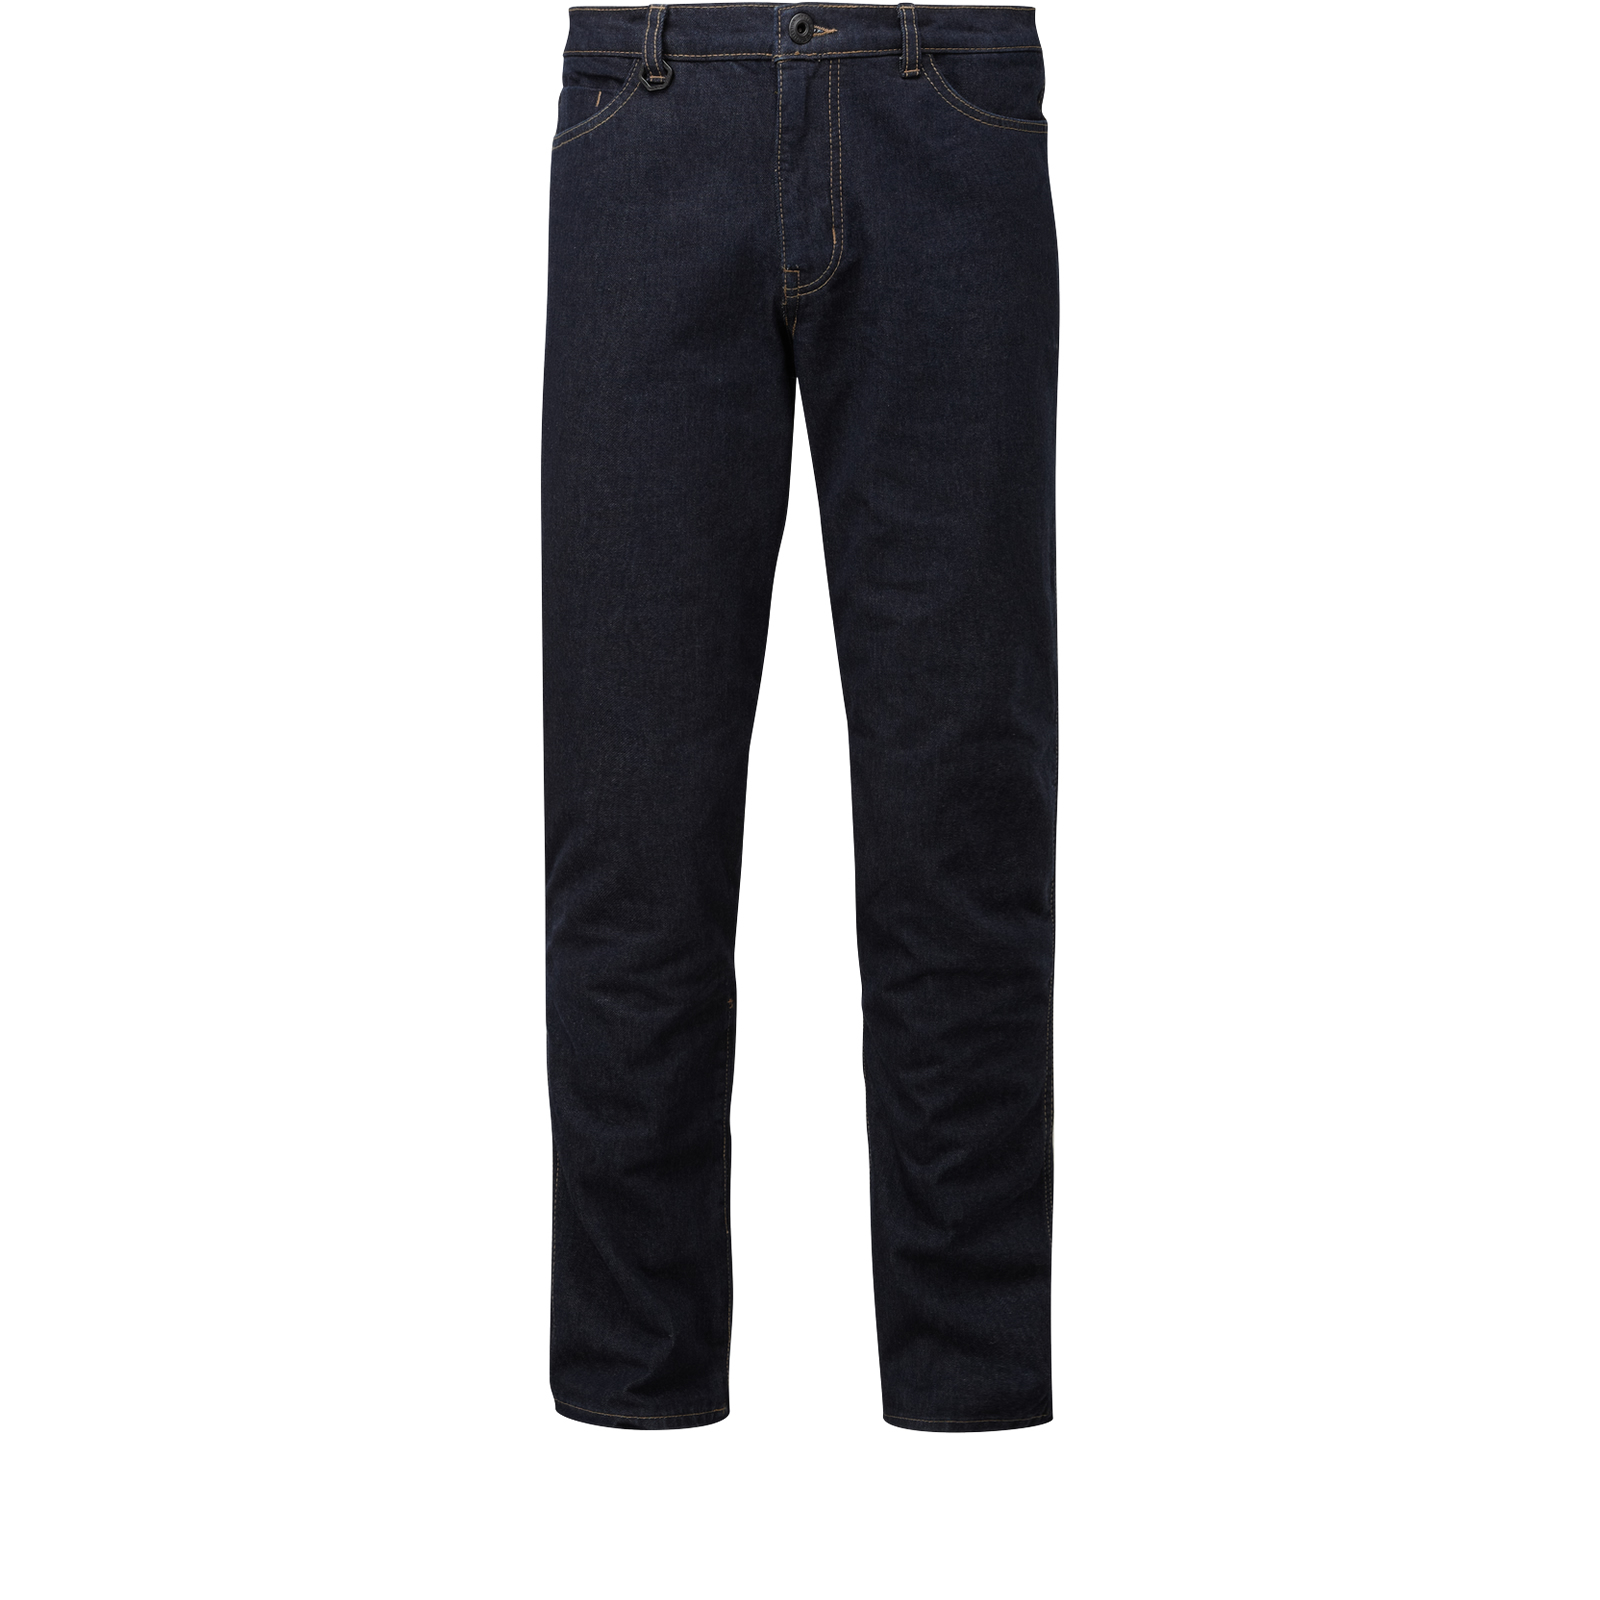 Bike Store Richmond Knox Richmond Blue Motorcycle Jeans Casual Clothing